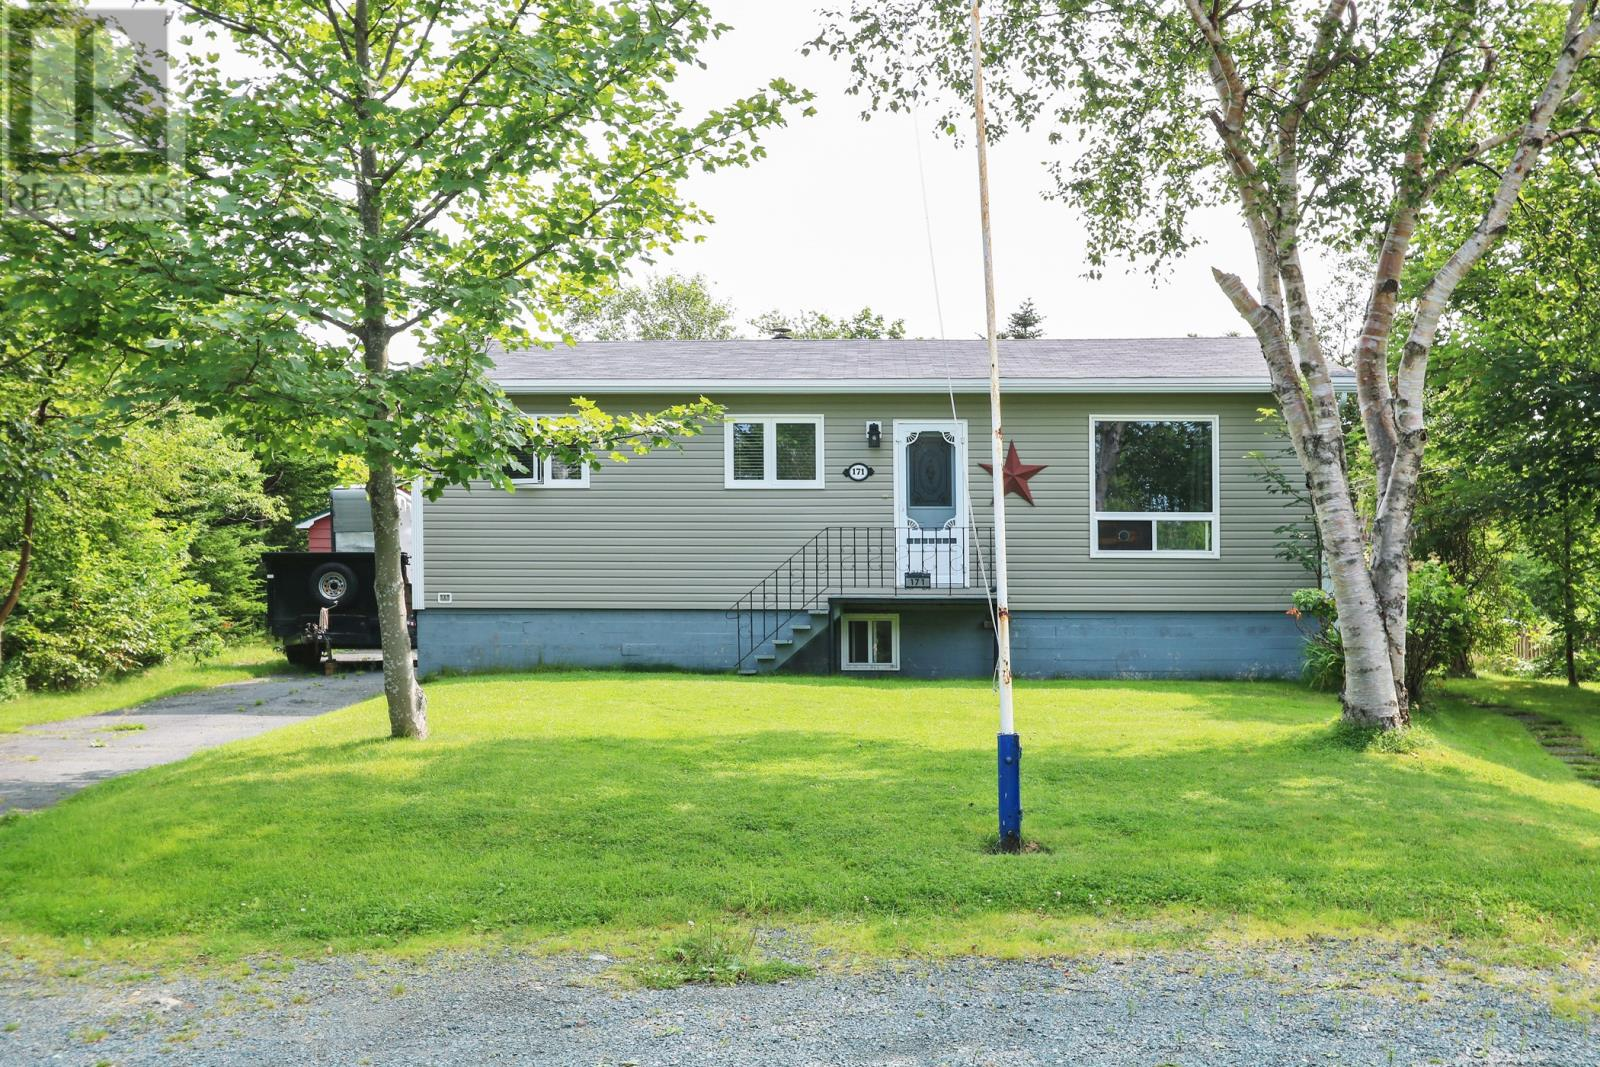 Removed: 171 Seal Cove Road, Conception Bay South, NL - Removed on 2019-02-22 04:21:34